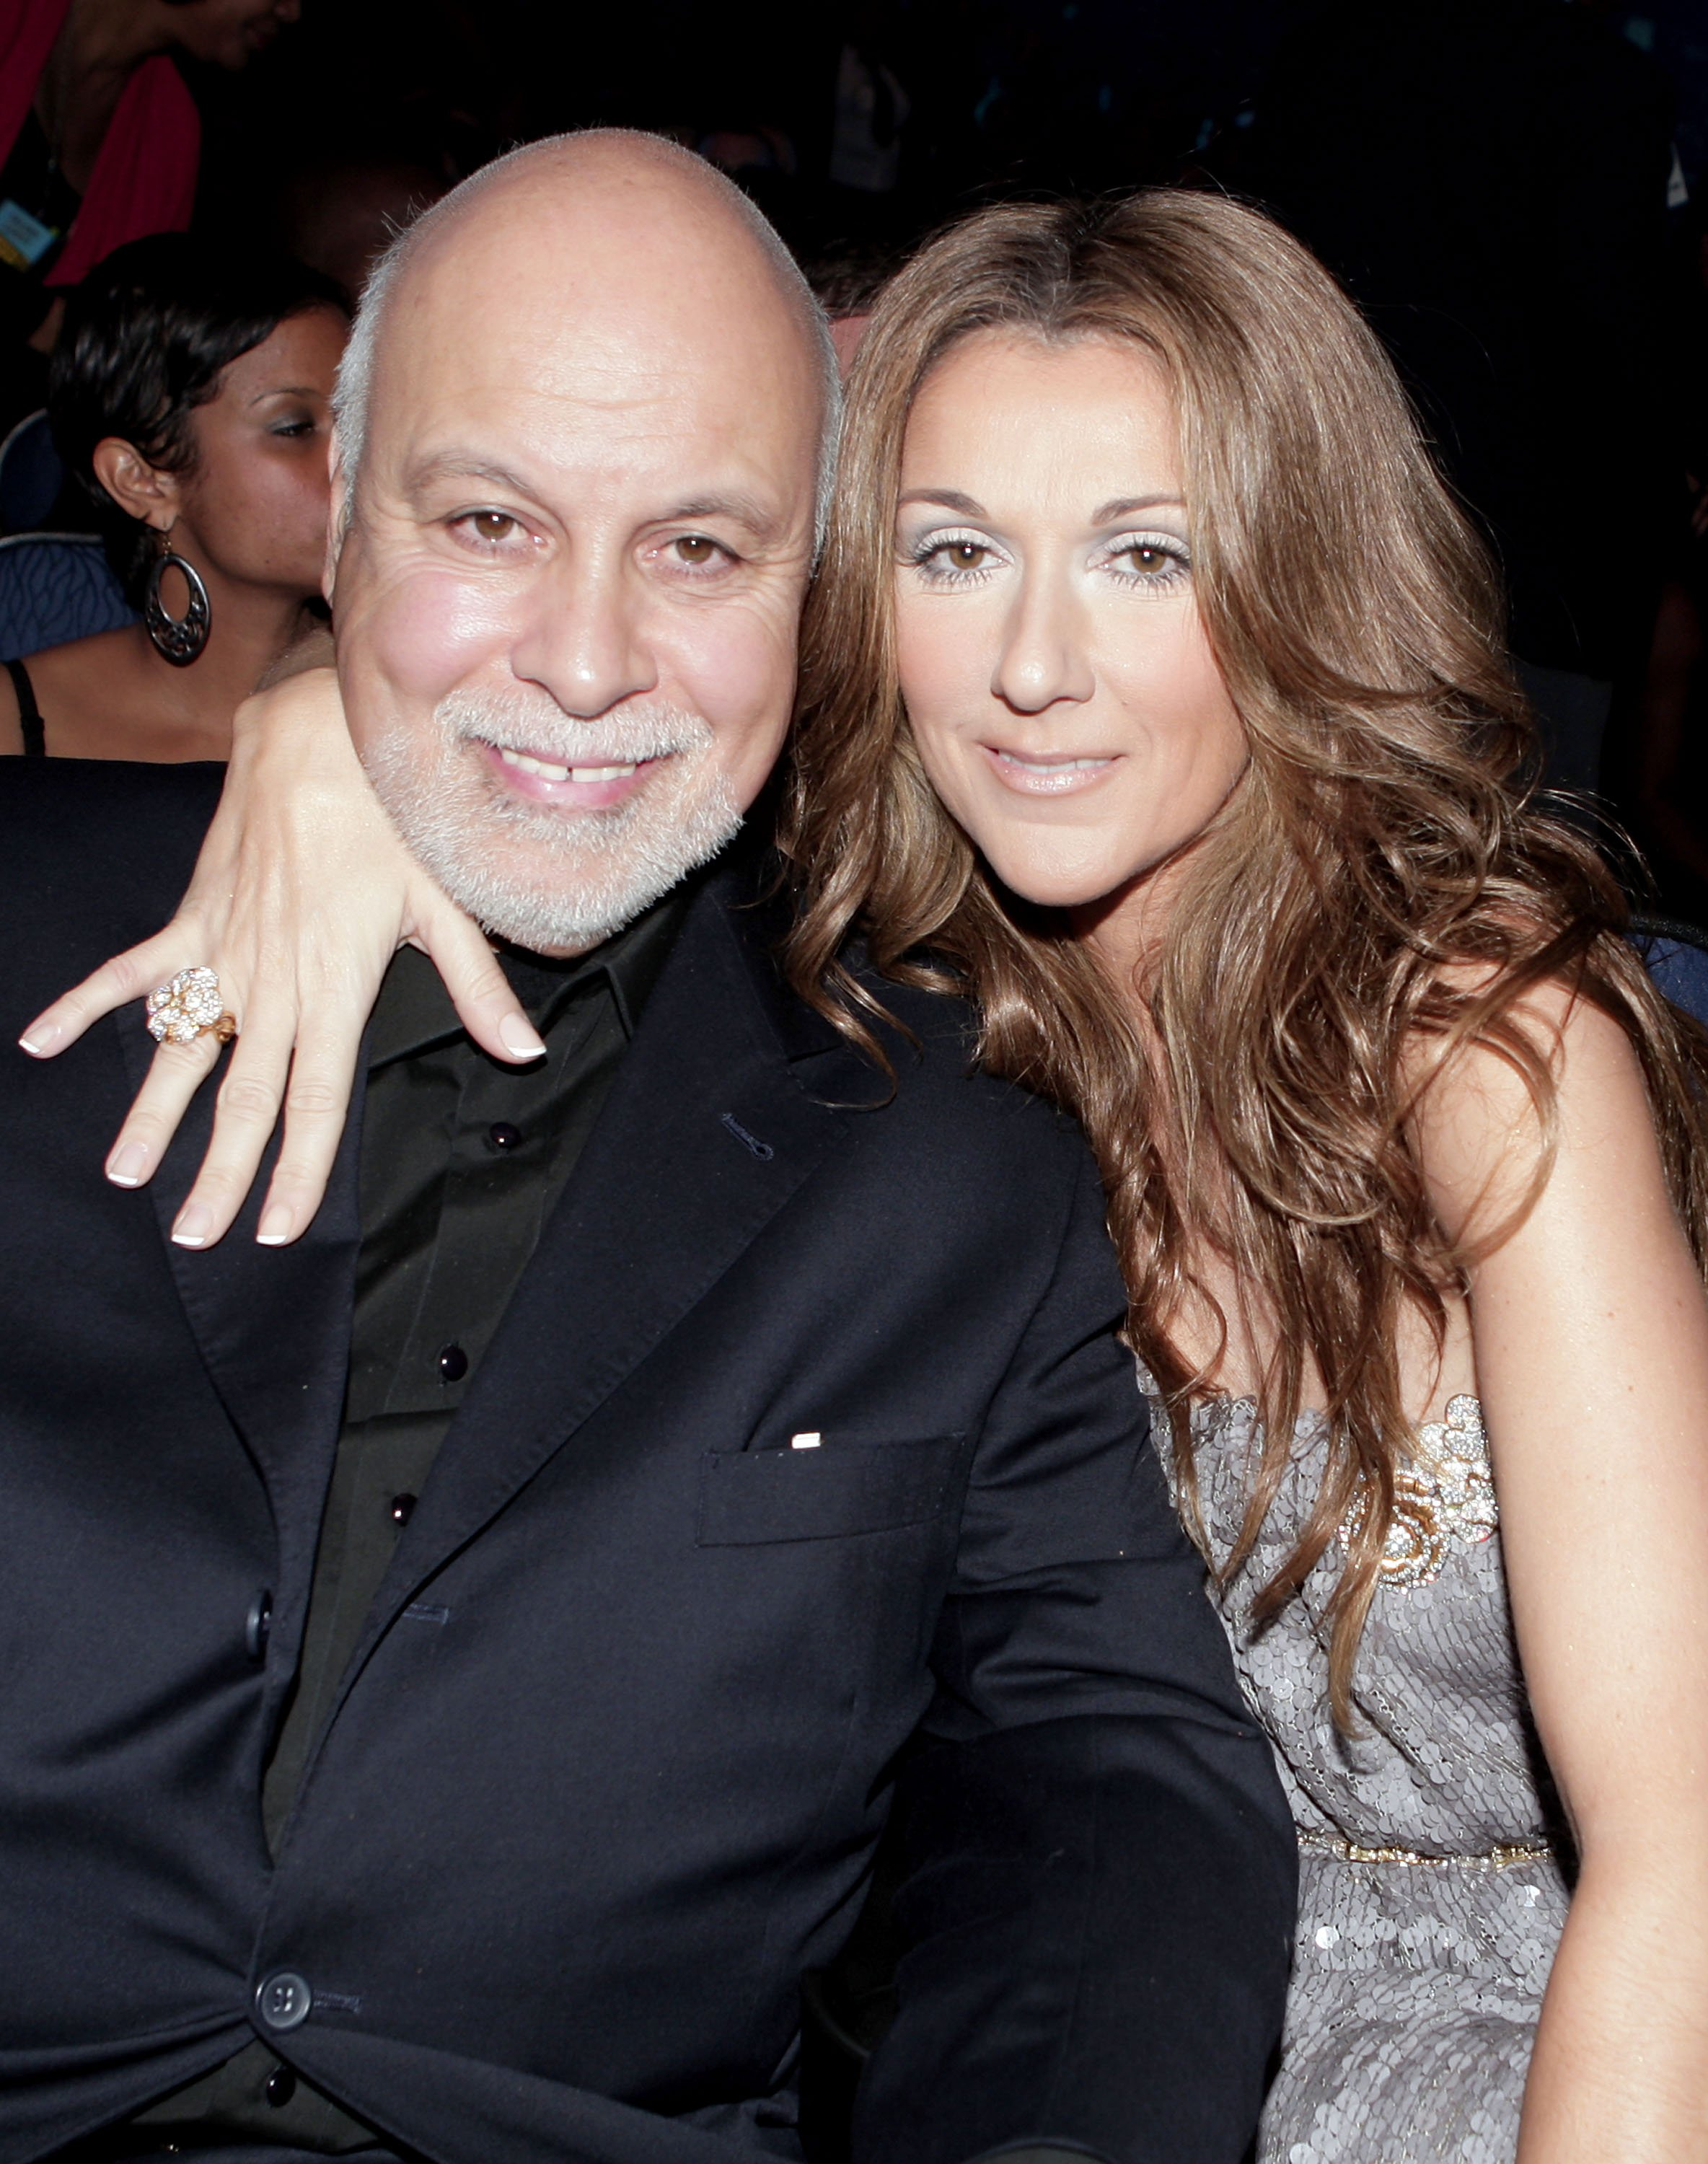 Rene Angelil and Singer Celine Dion in the audience during the 2007 American Music Awards held at the Nokia Theatre L.A. LIVE on November 18, 2007, in Los Angeles, California. | Source: Getty Images.